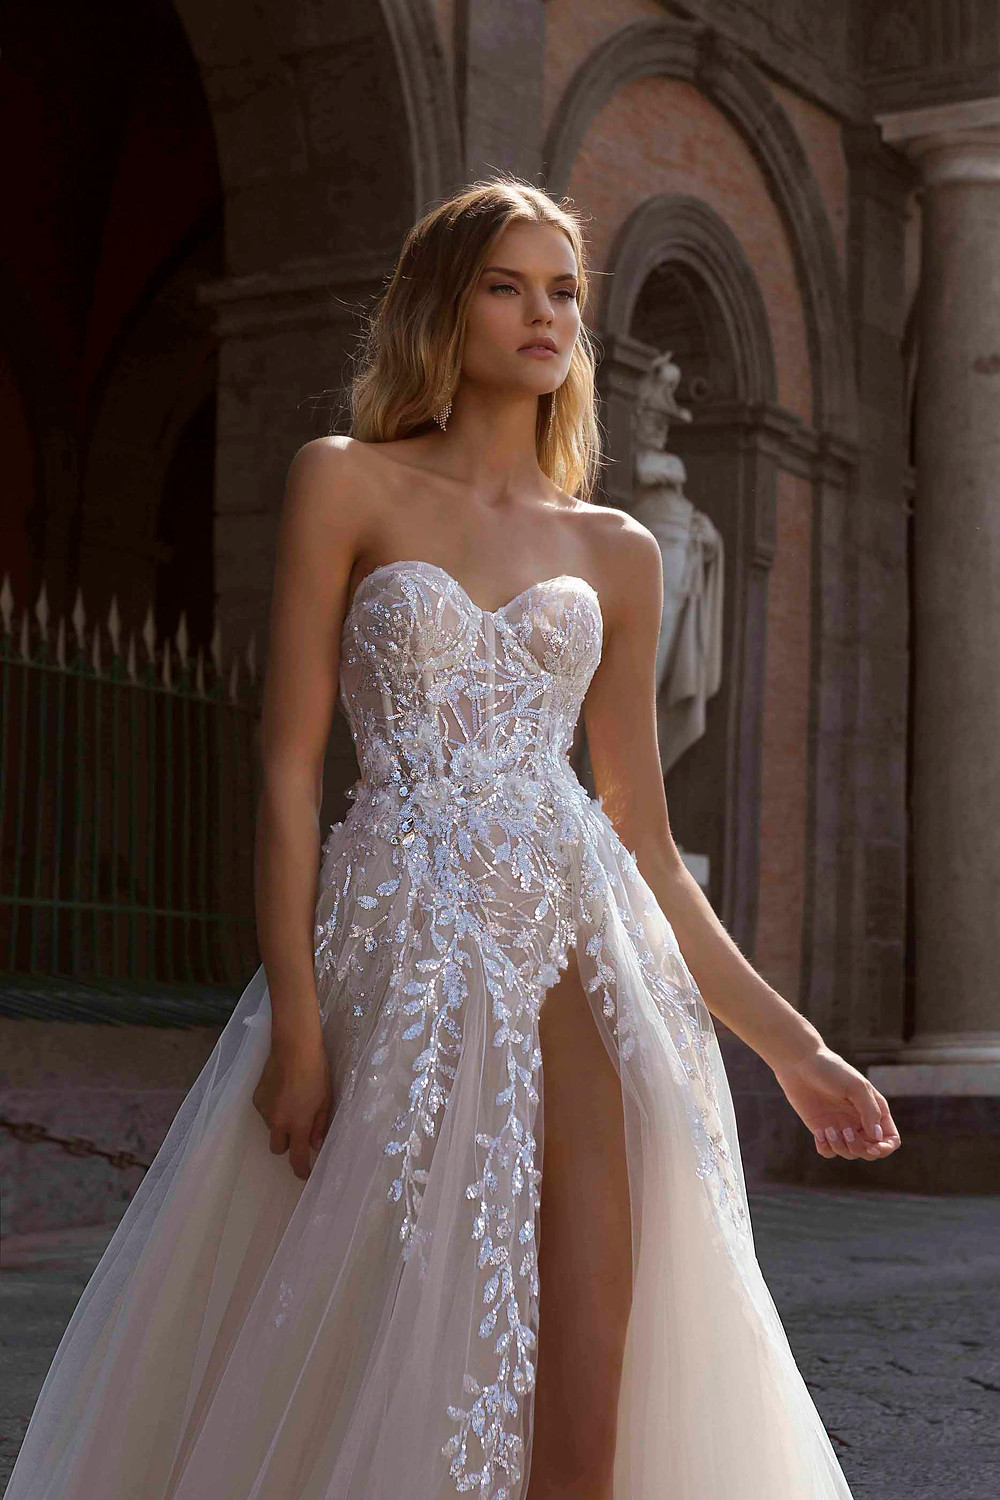 A sparkle ball gown with tulle skirt, sweetheart neckline, corset top and crystals